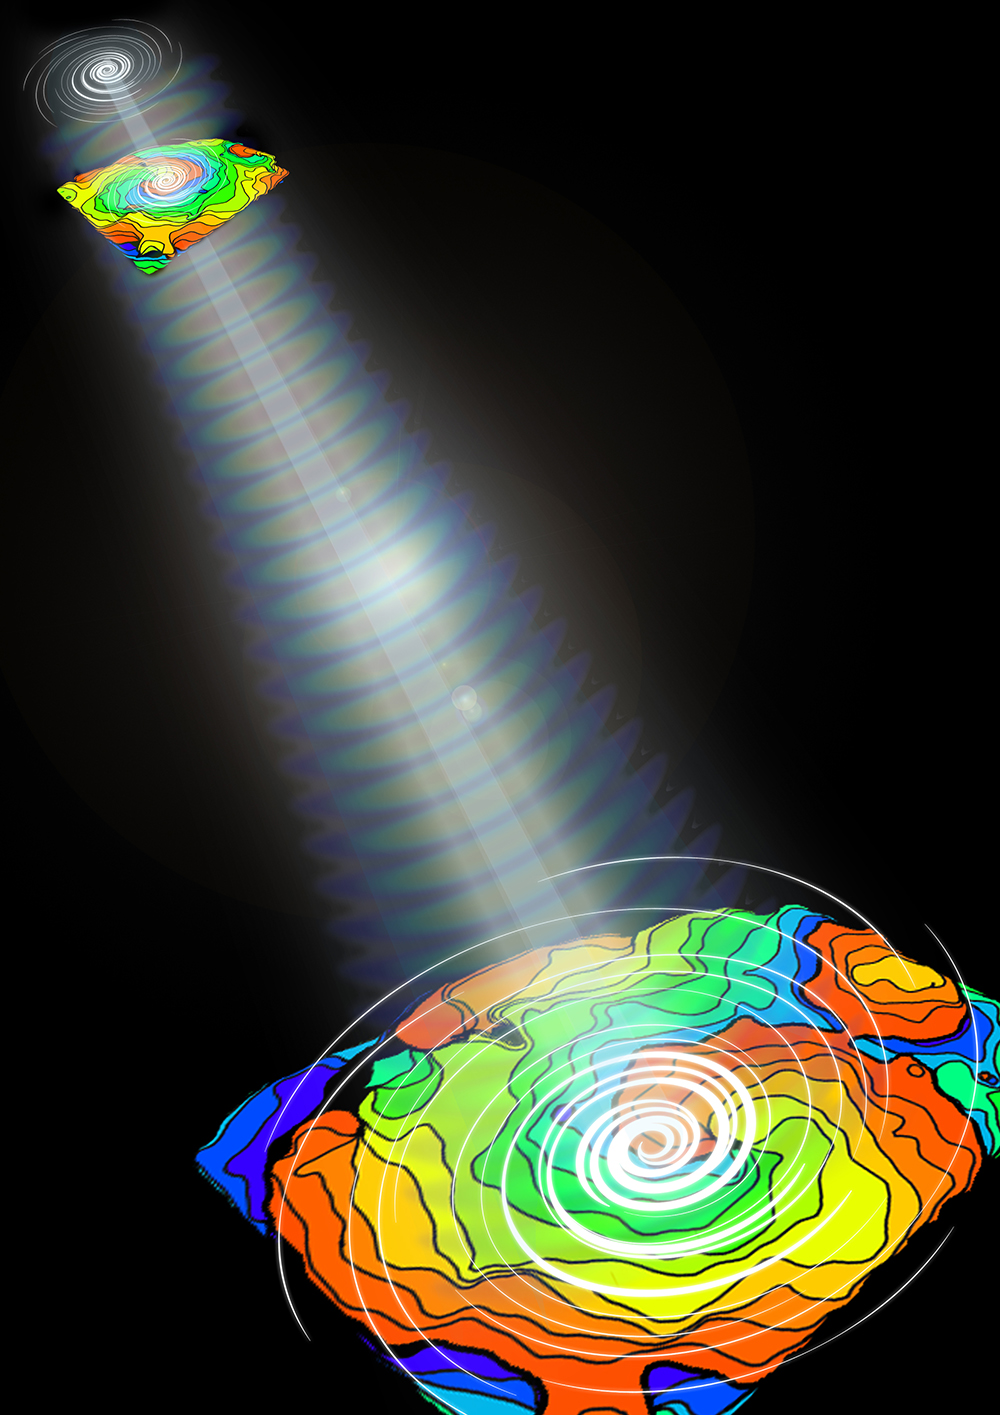 Using computer-generated light patterns, researchers were able to control the direction of cardiac electrical waves (color maps), which form distinct spirals during arrhythmias. Credit: Eana Park